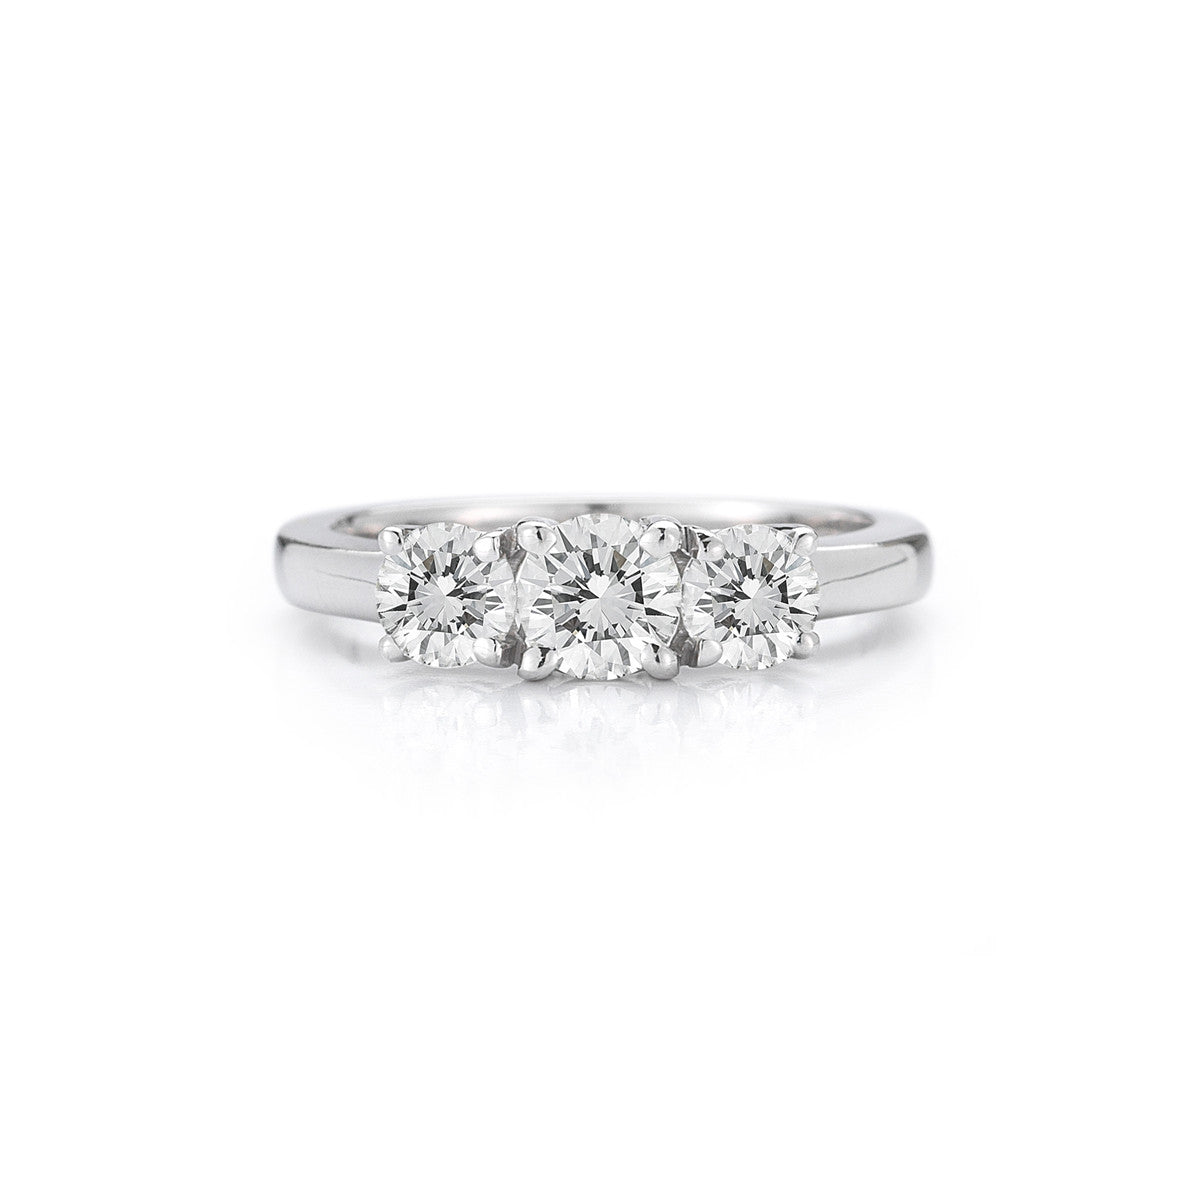 The Maharani Round Trilogy Engagement Ring